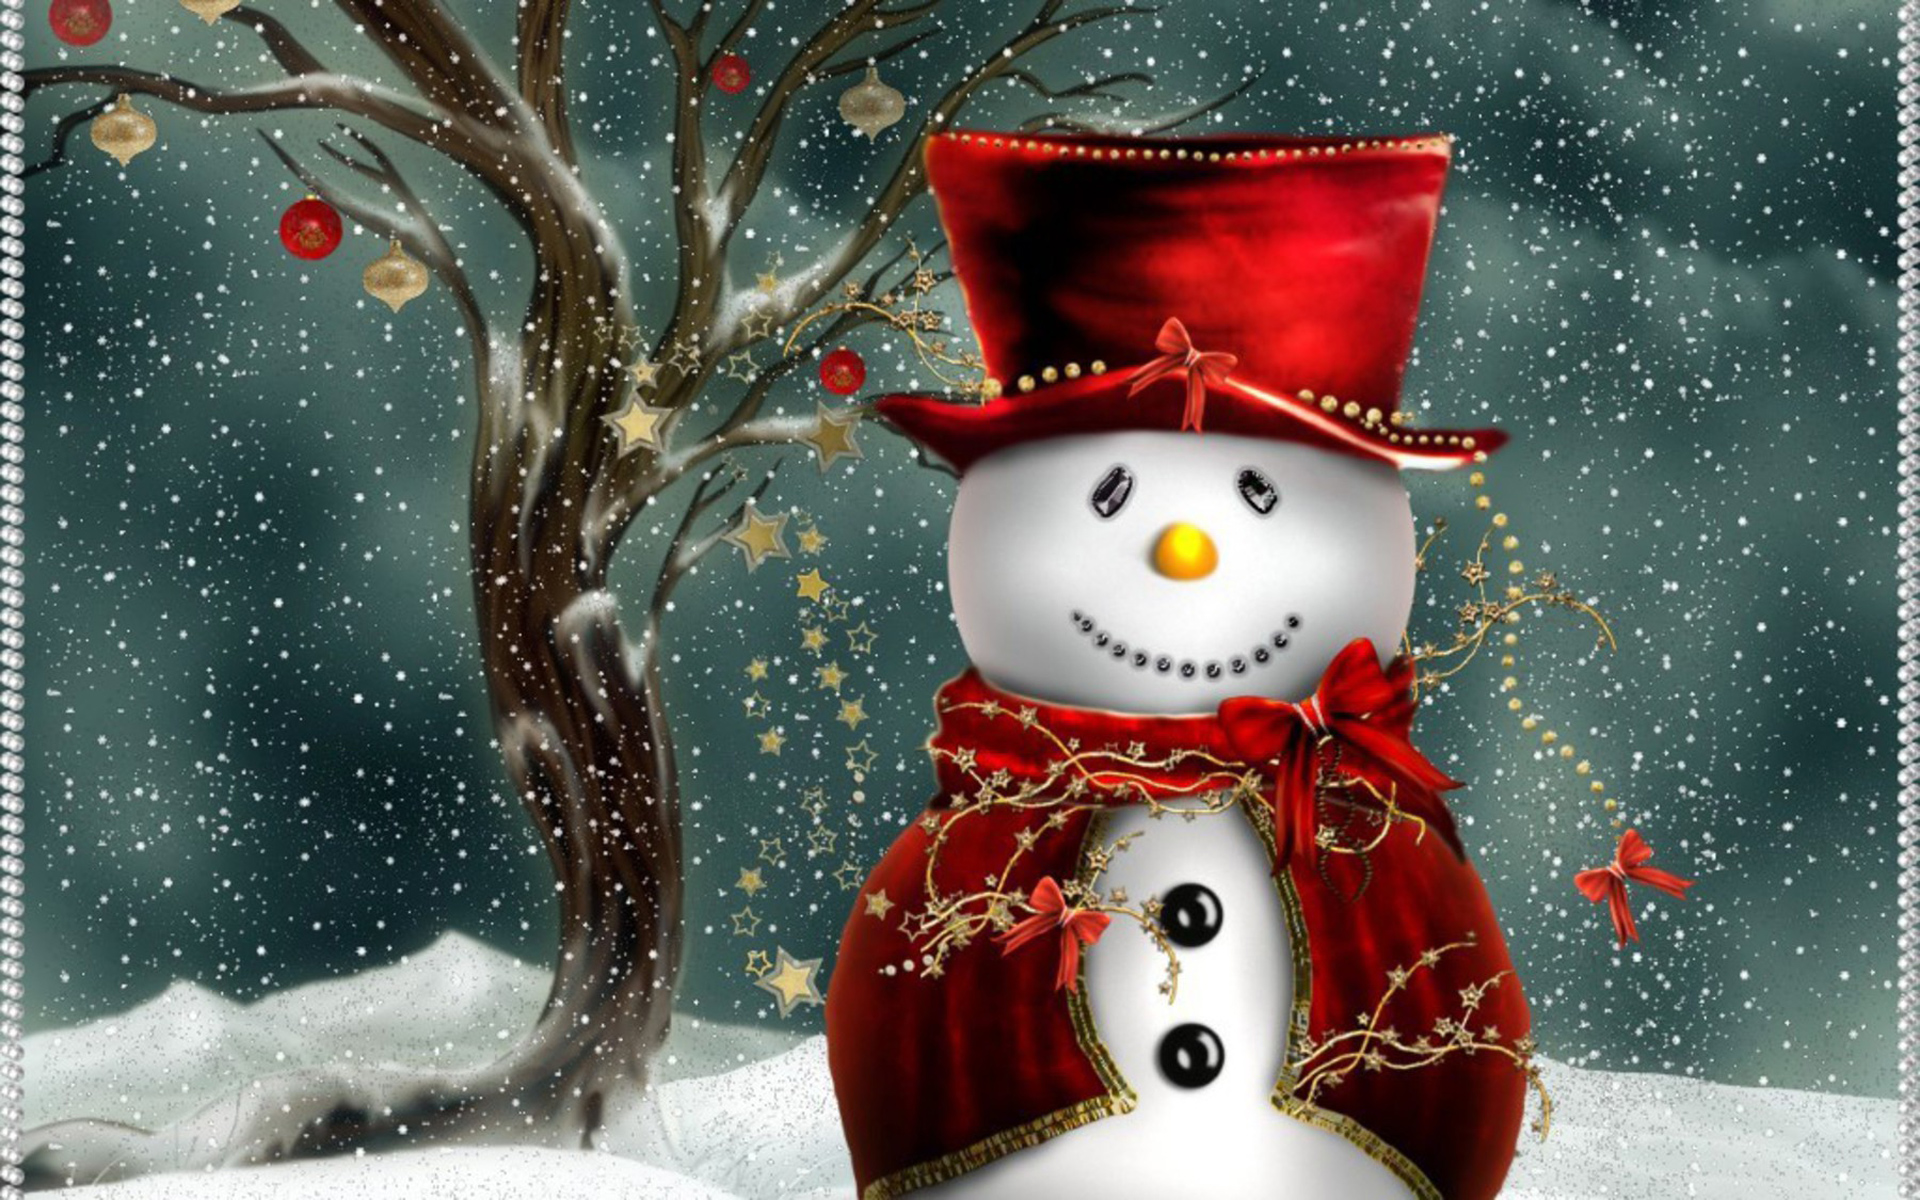 size 1920x1200 desktop wallpaper of cute christmas snowman 1920x1200